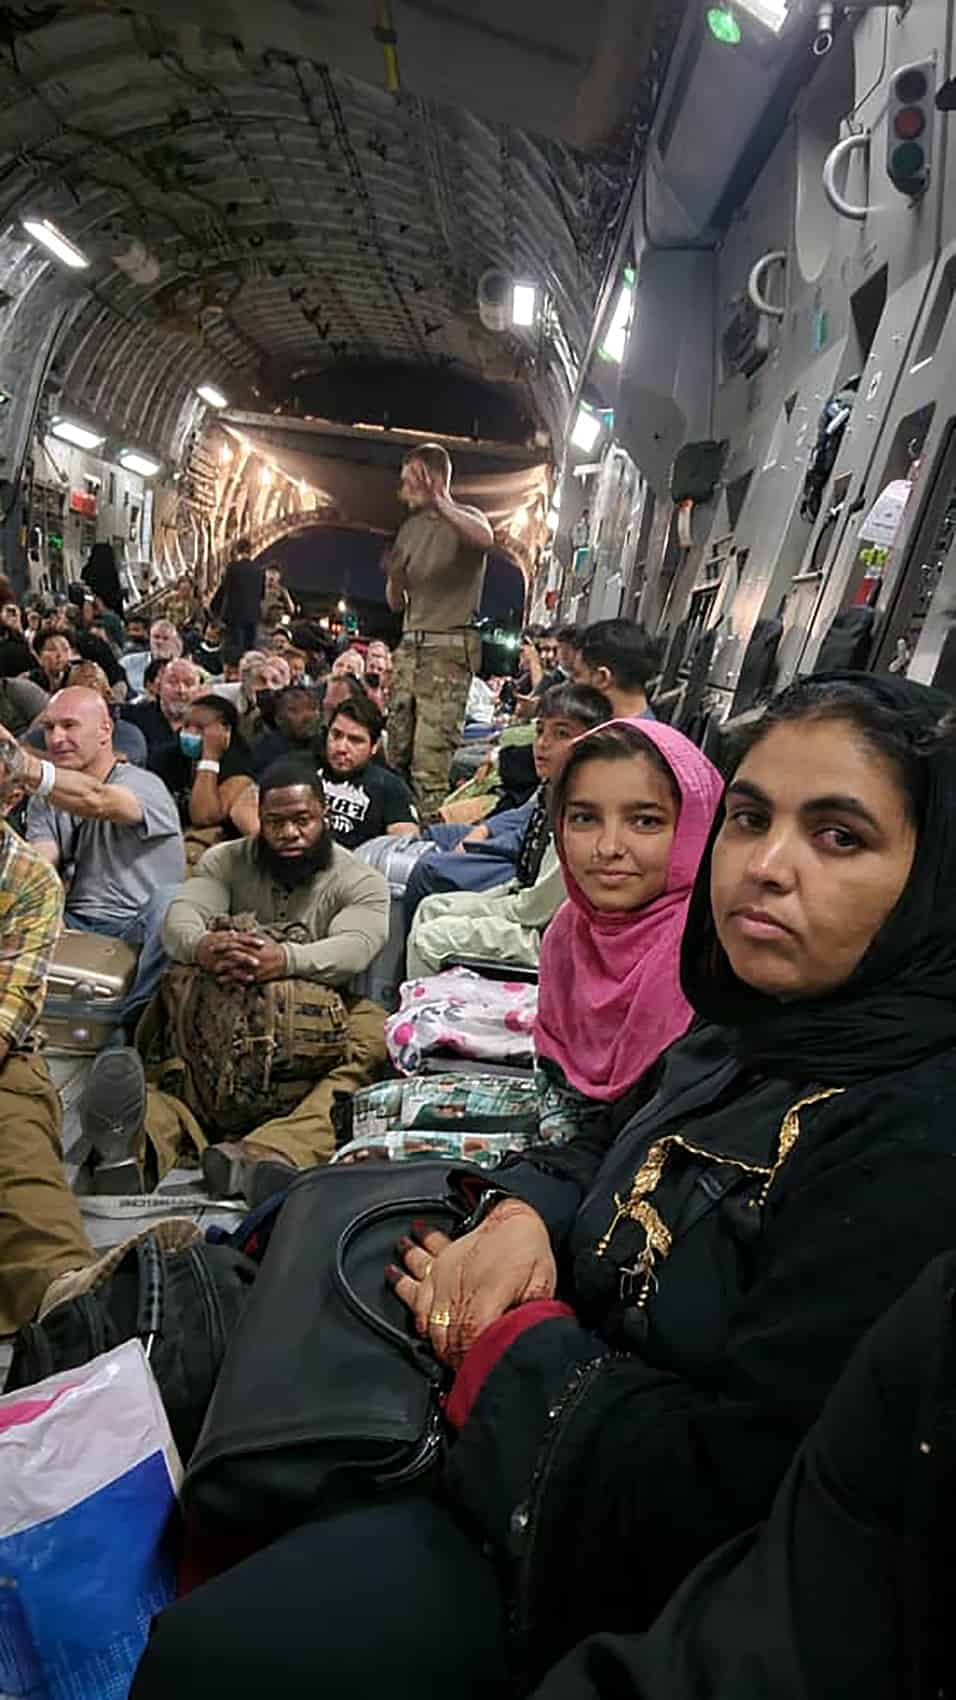 Ali's family escaped Afghanistan aboard a military cargo plane; so far, the U.S. has evacuated 95,000 people.